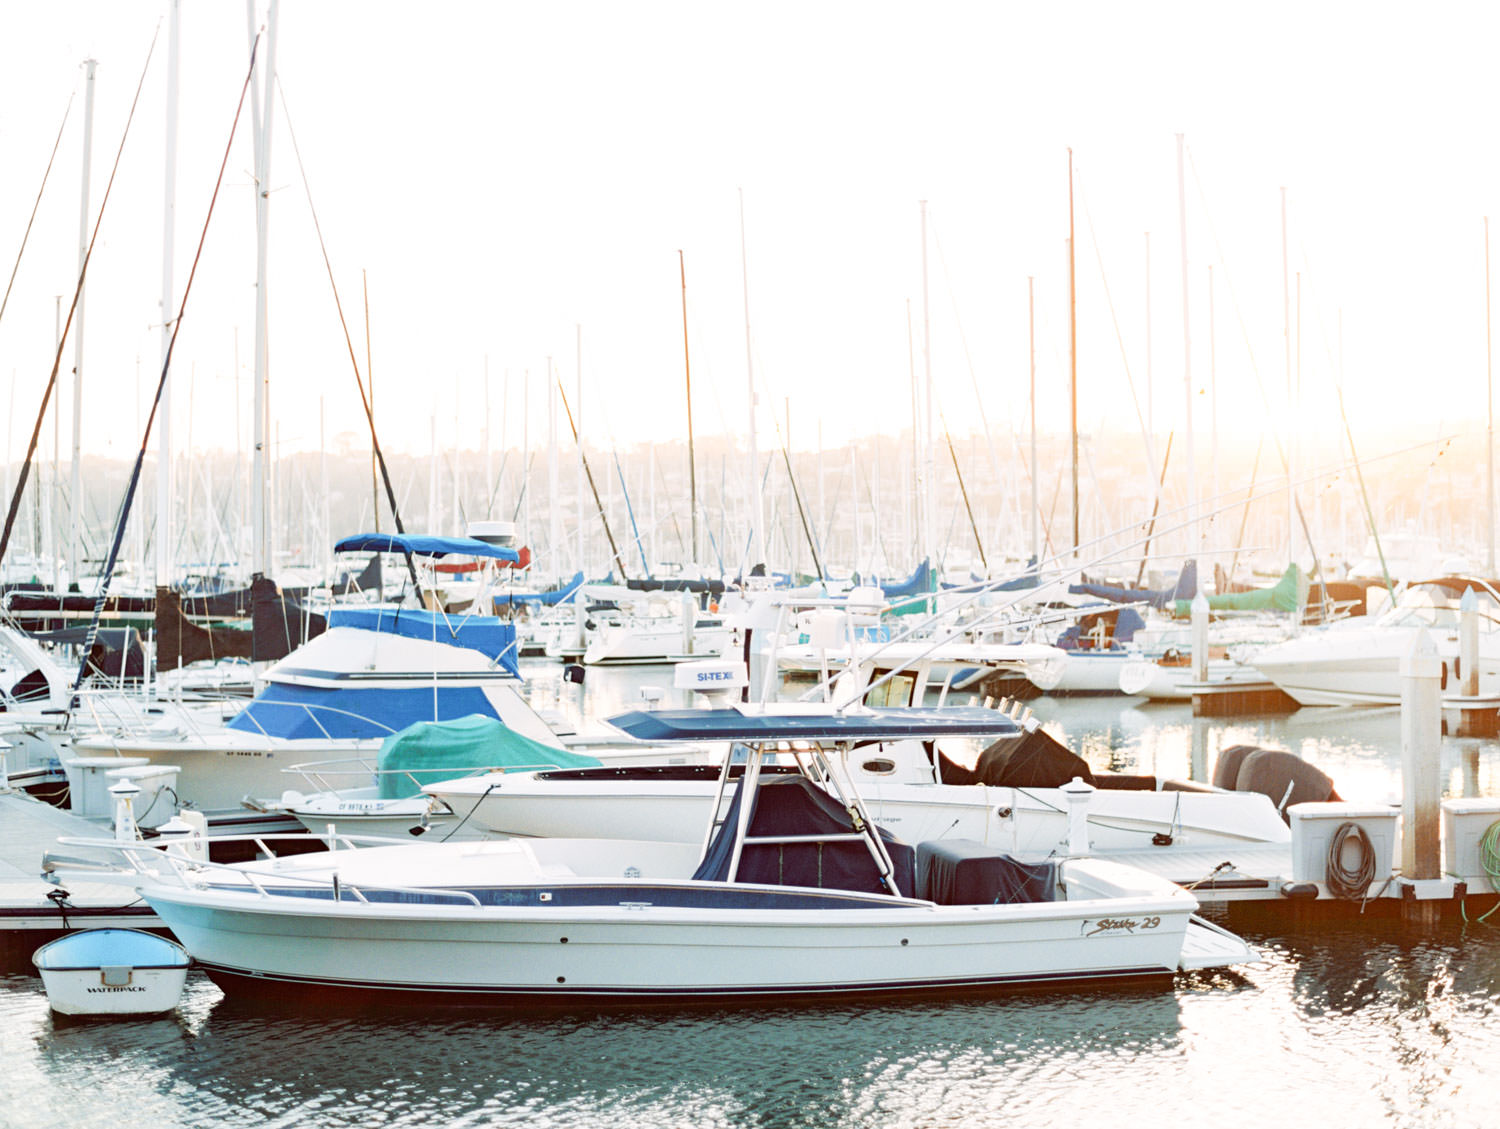 Marina boats during sunset captured on film. Wedding at Humphreys Half Moon Inn by Cavin Elizabeth Photography